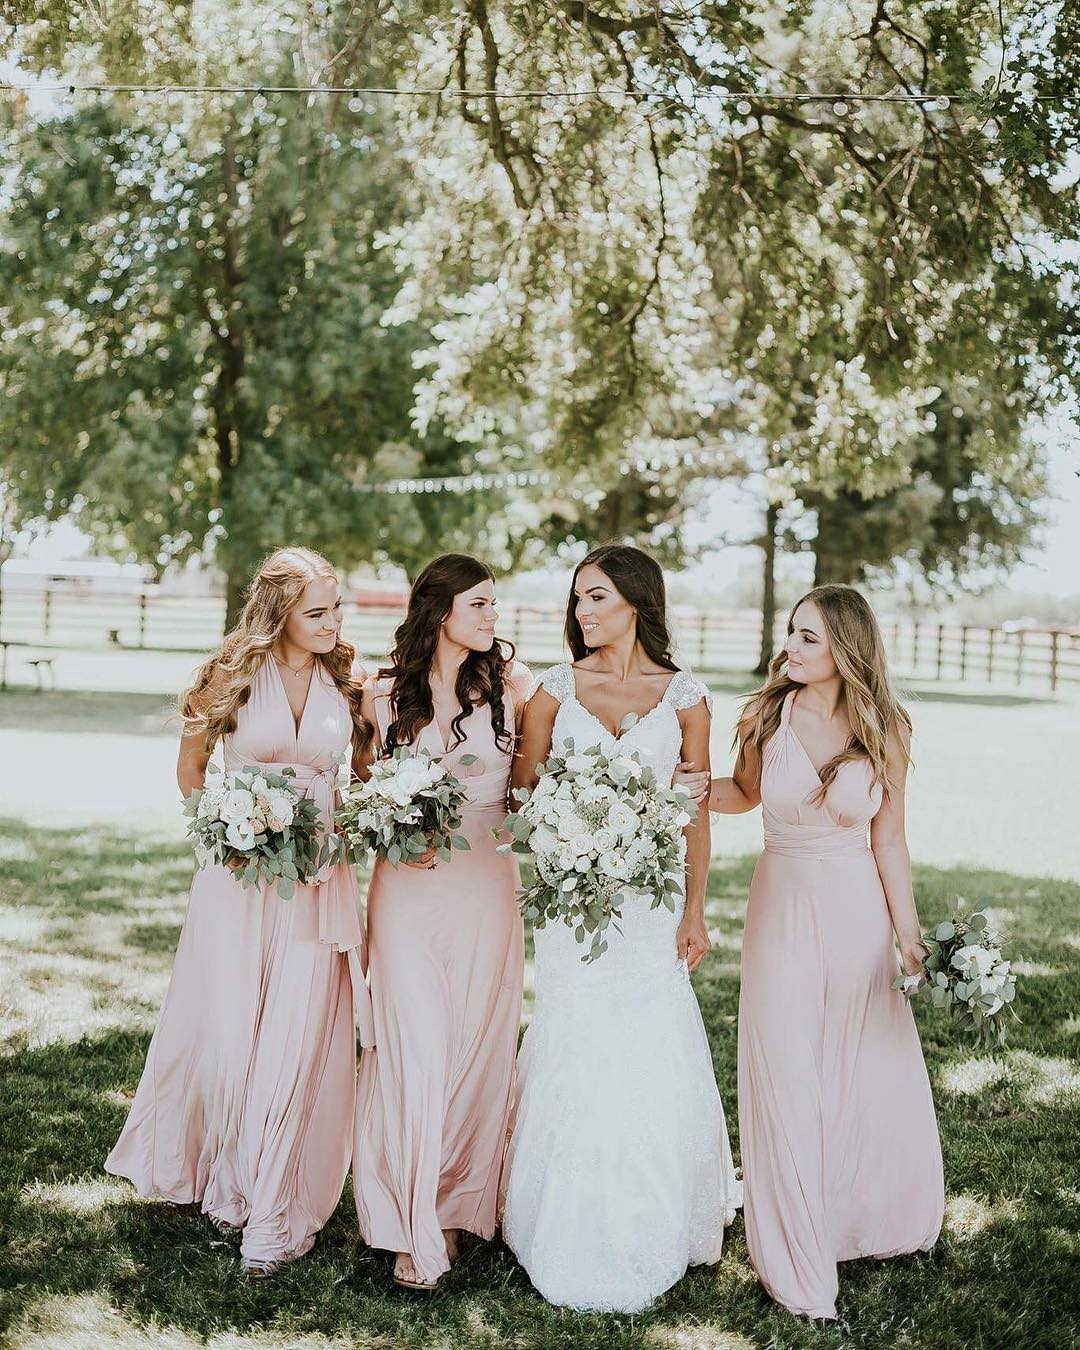 06865e316f9 Her bridesmaids are looking darling wearing our Always Stunning Convertible  Blush Pink Maxi Dress. Wedding dates filling up your calendar